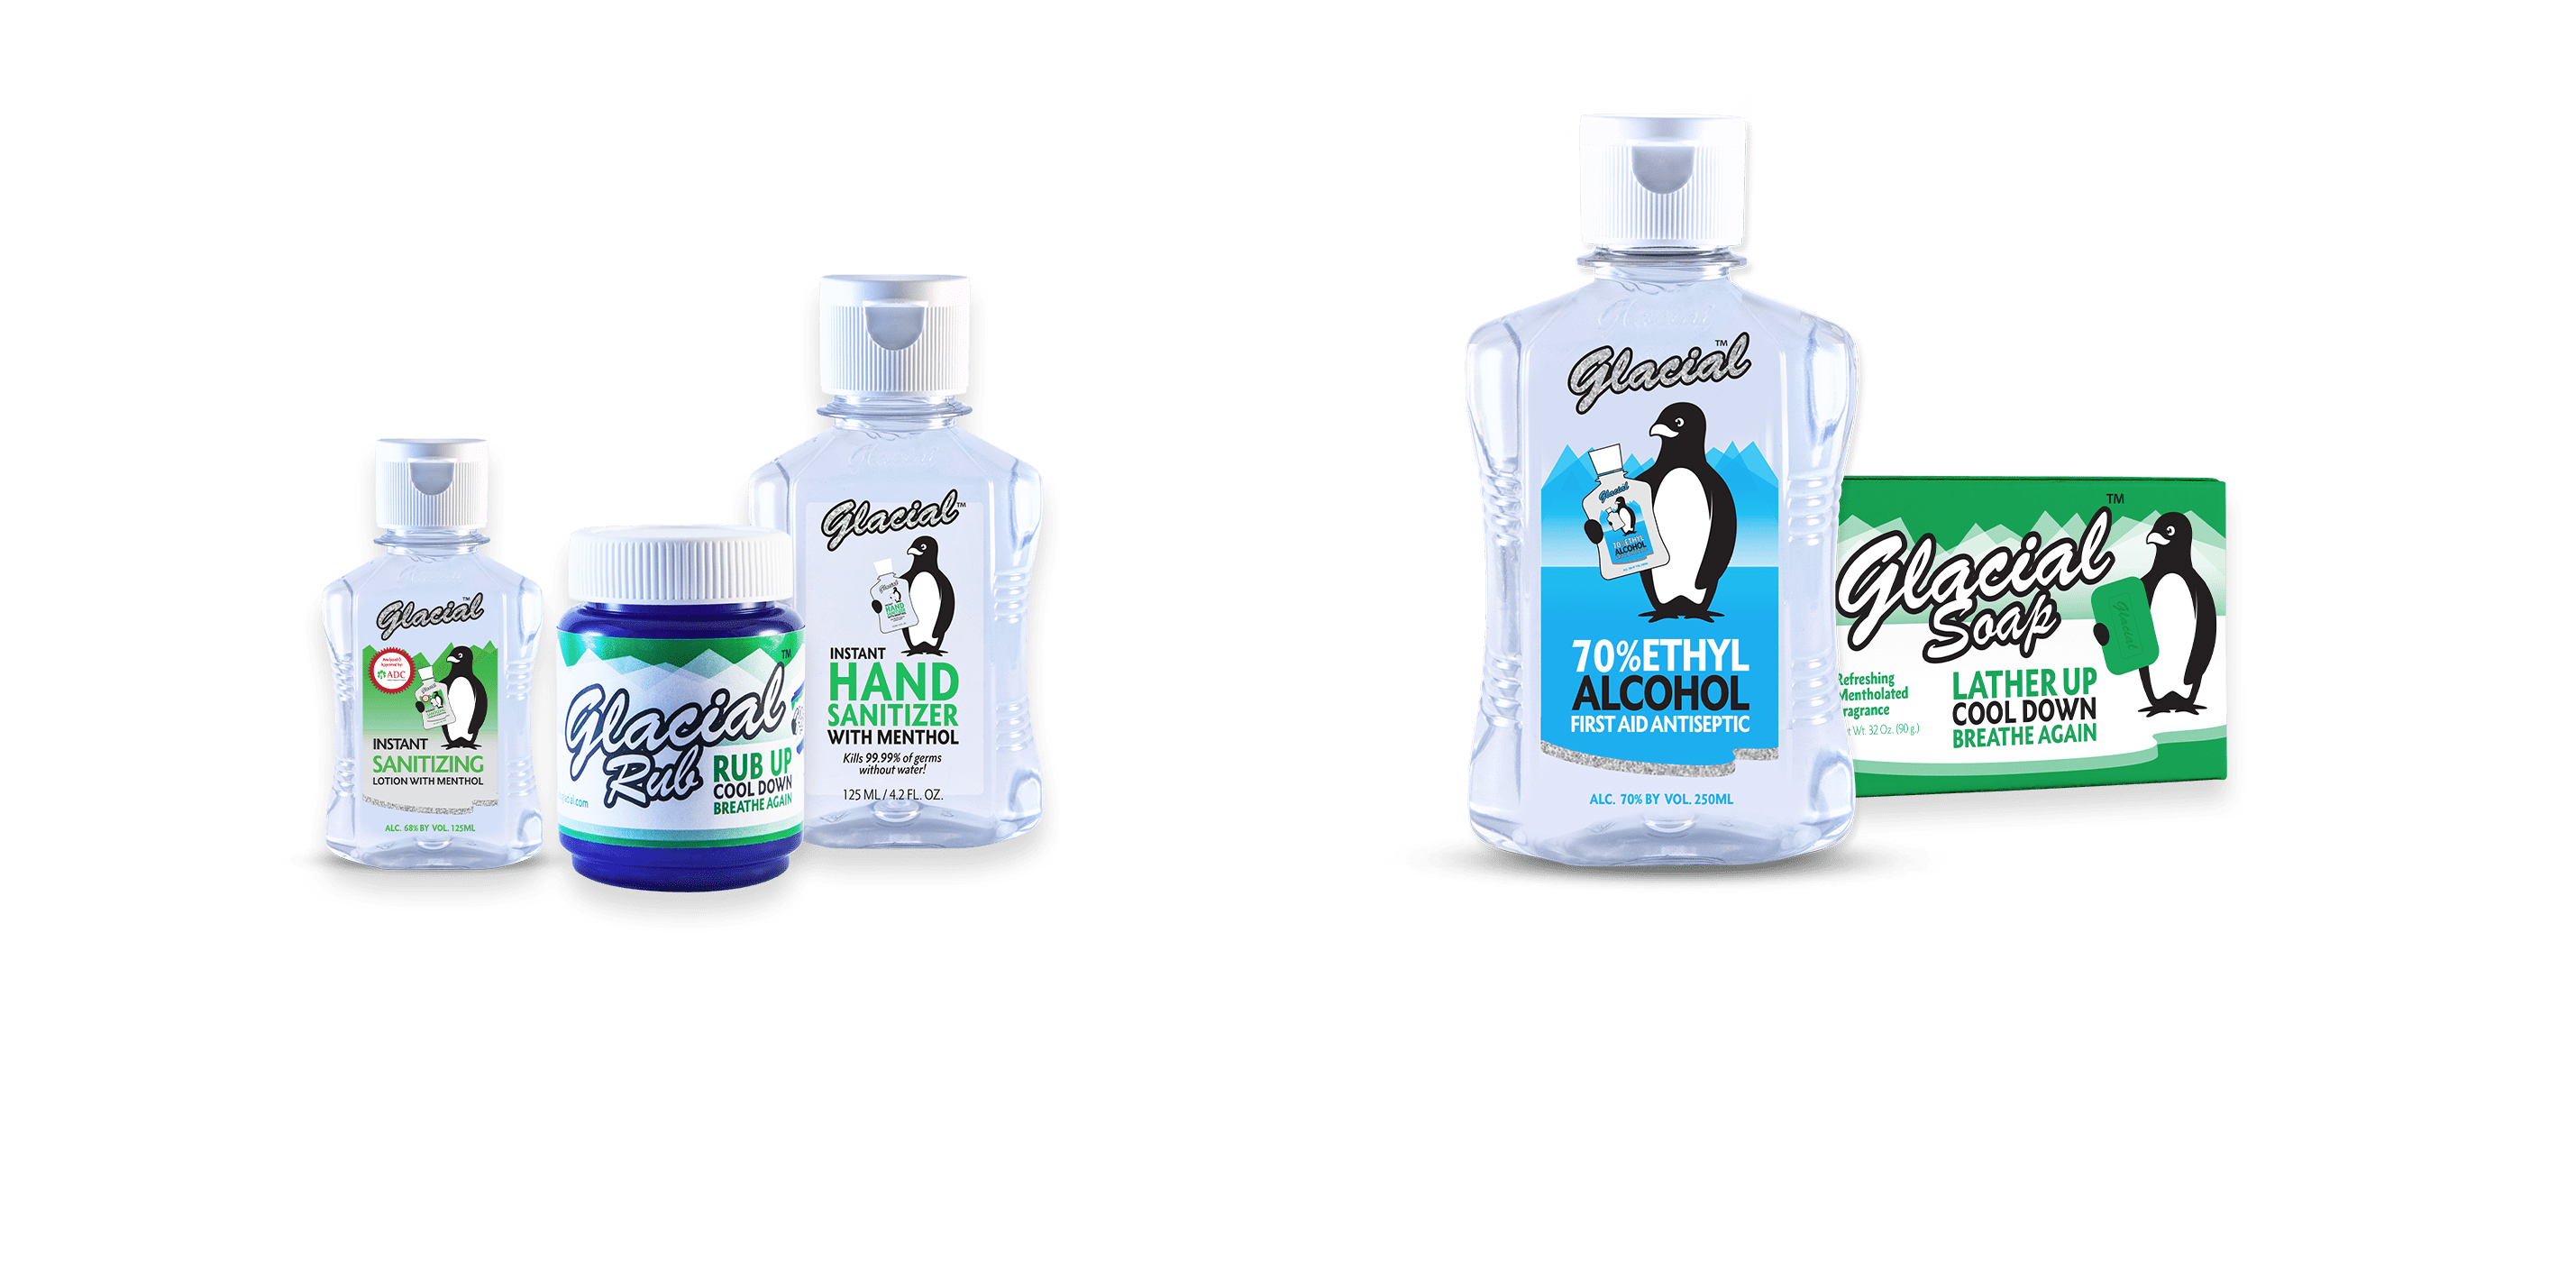 The different Glacial products to refresh, relieve and repower.